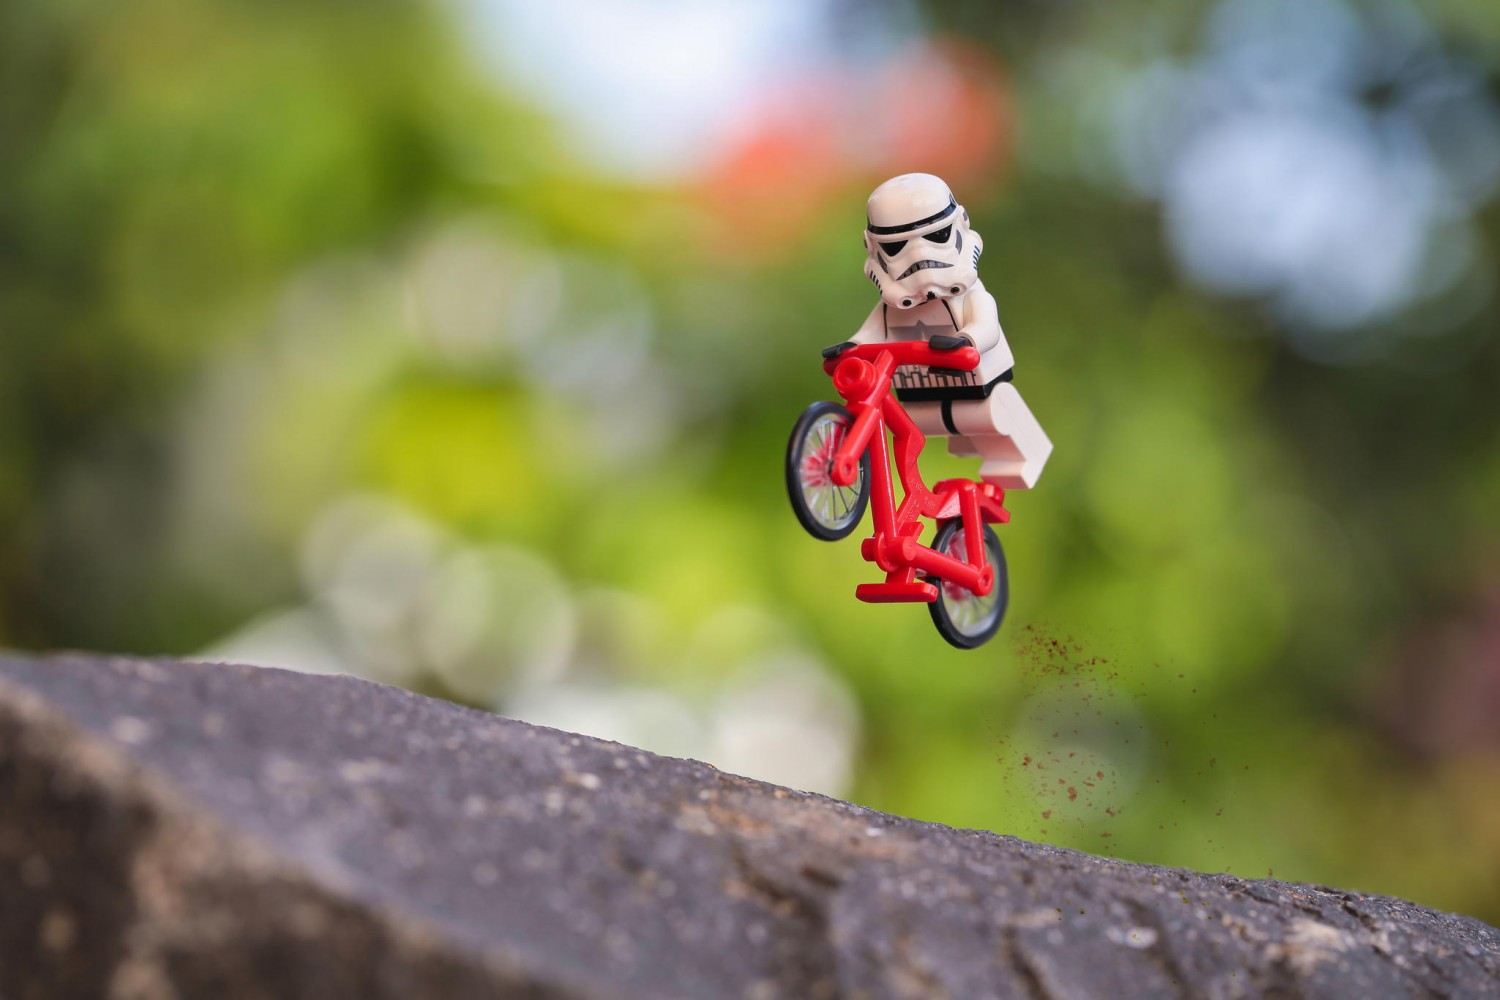 48 Photos Of Stormtroopers Doing Awesome Things